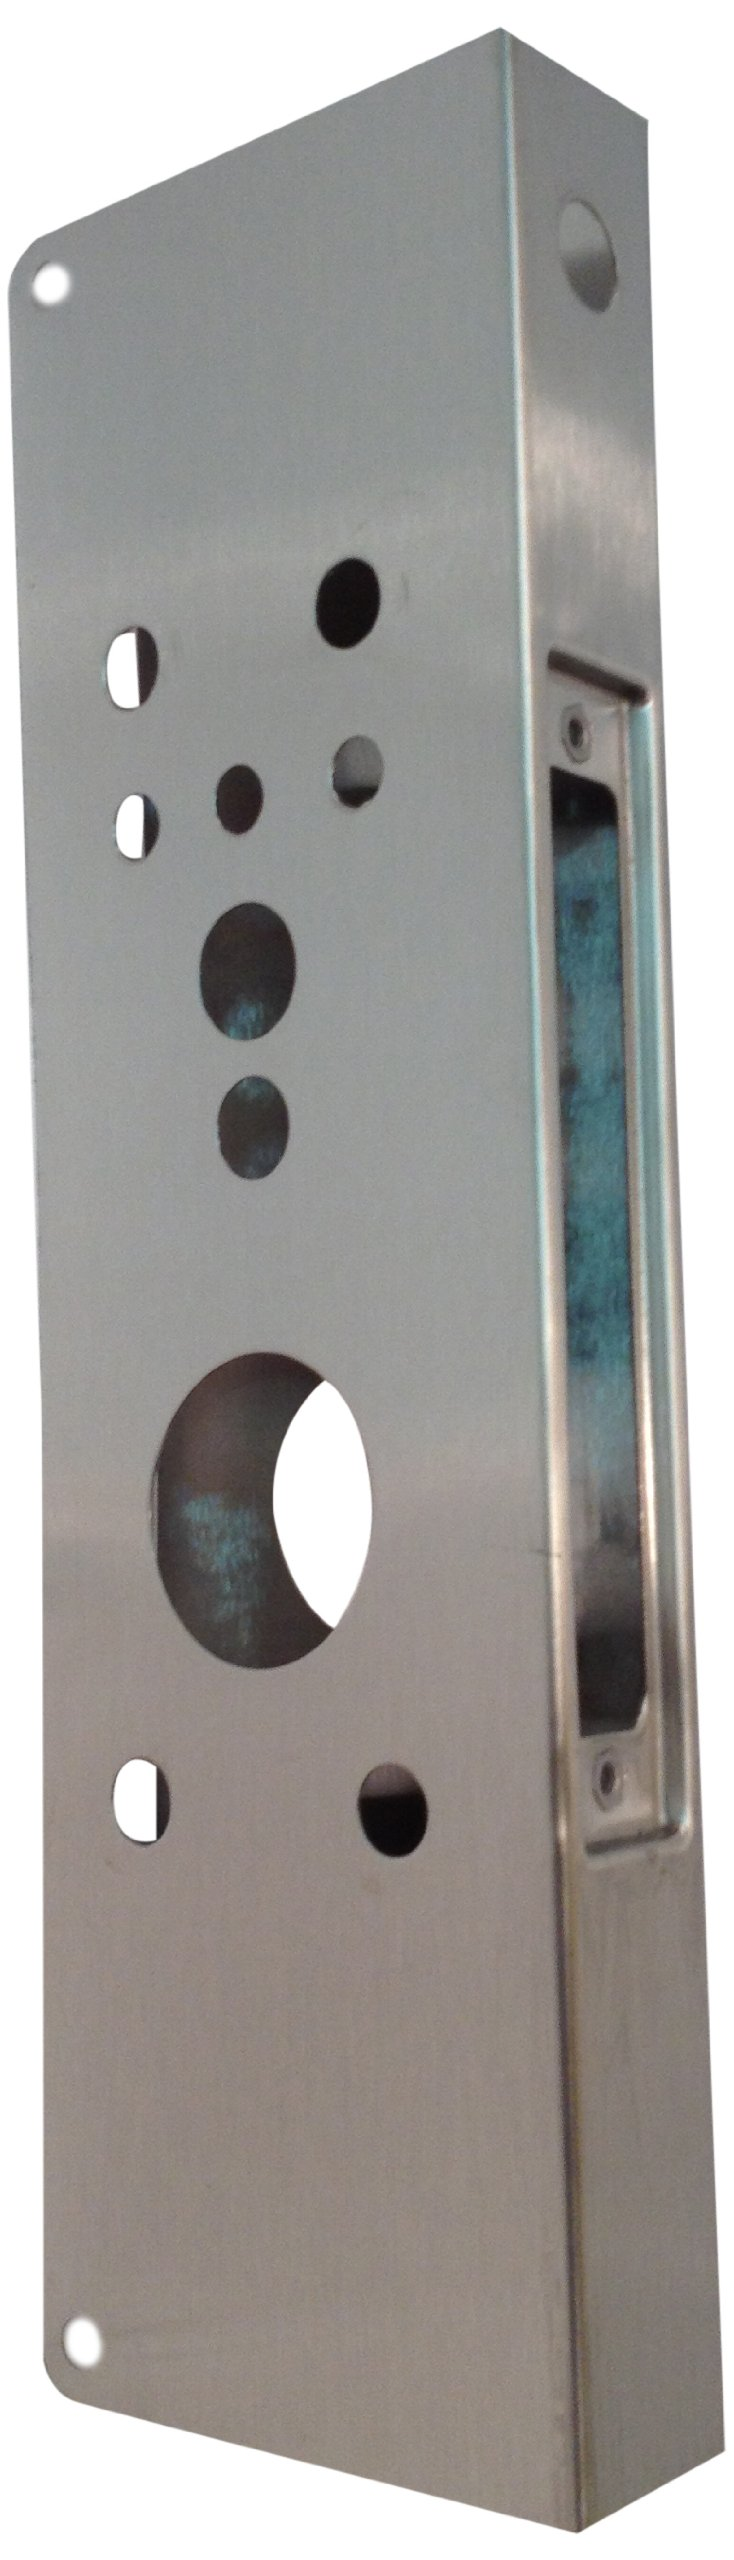 Don-Jo 504AD 22-Gauge Mortise Lock Wrap-Around Plate, Satin Stainless Steel Finish, 5'' Width x 12'' Height, For 86 Cut-Out by Don-Jo (Image #1)